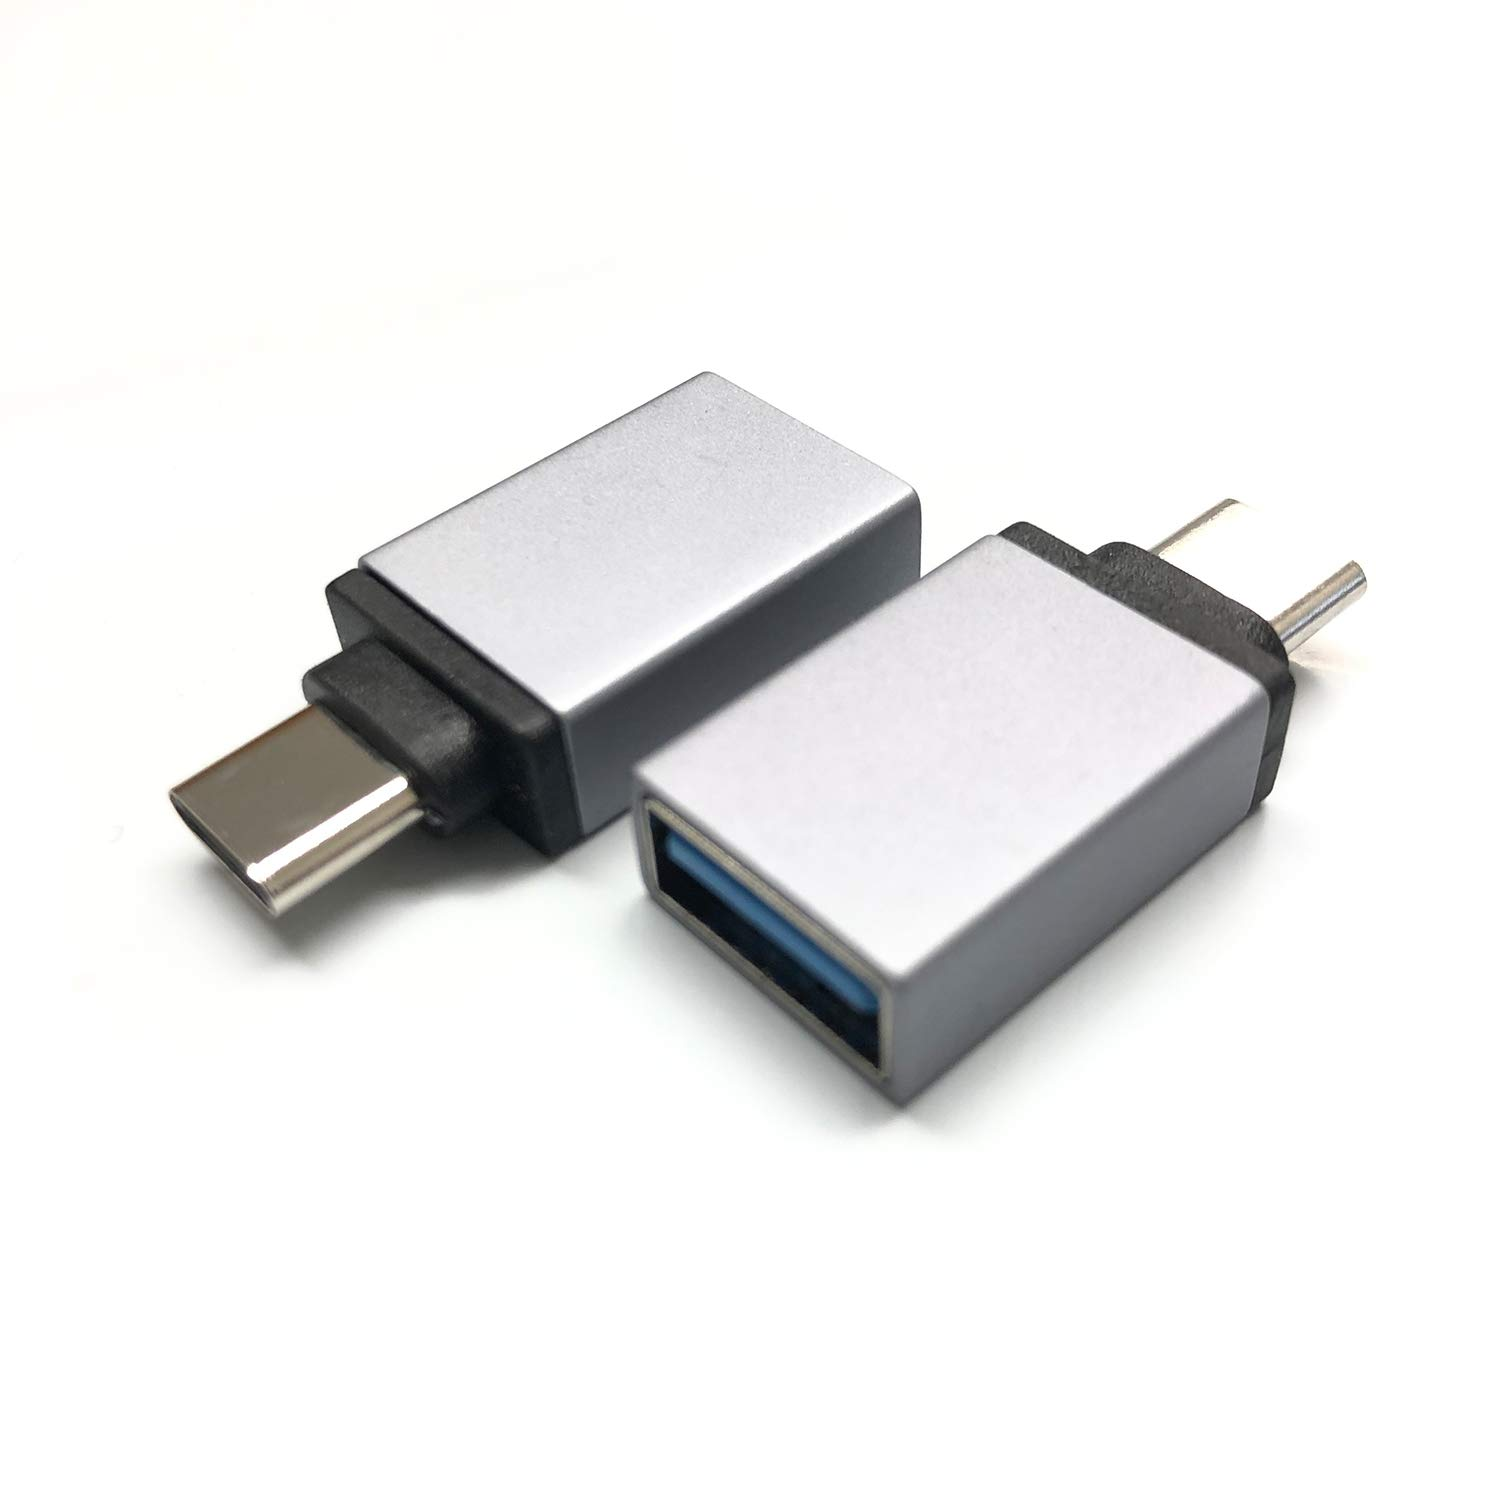 USB Type C to USB 3.0 Adapter Thunderbolt 3 for Macbook Pro Air 2018//2017 Pixel